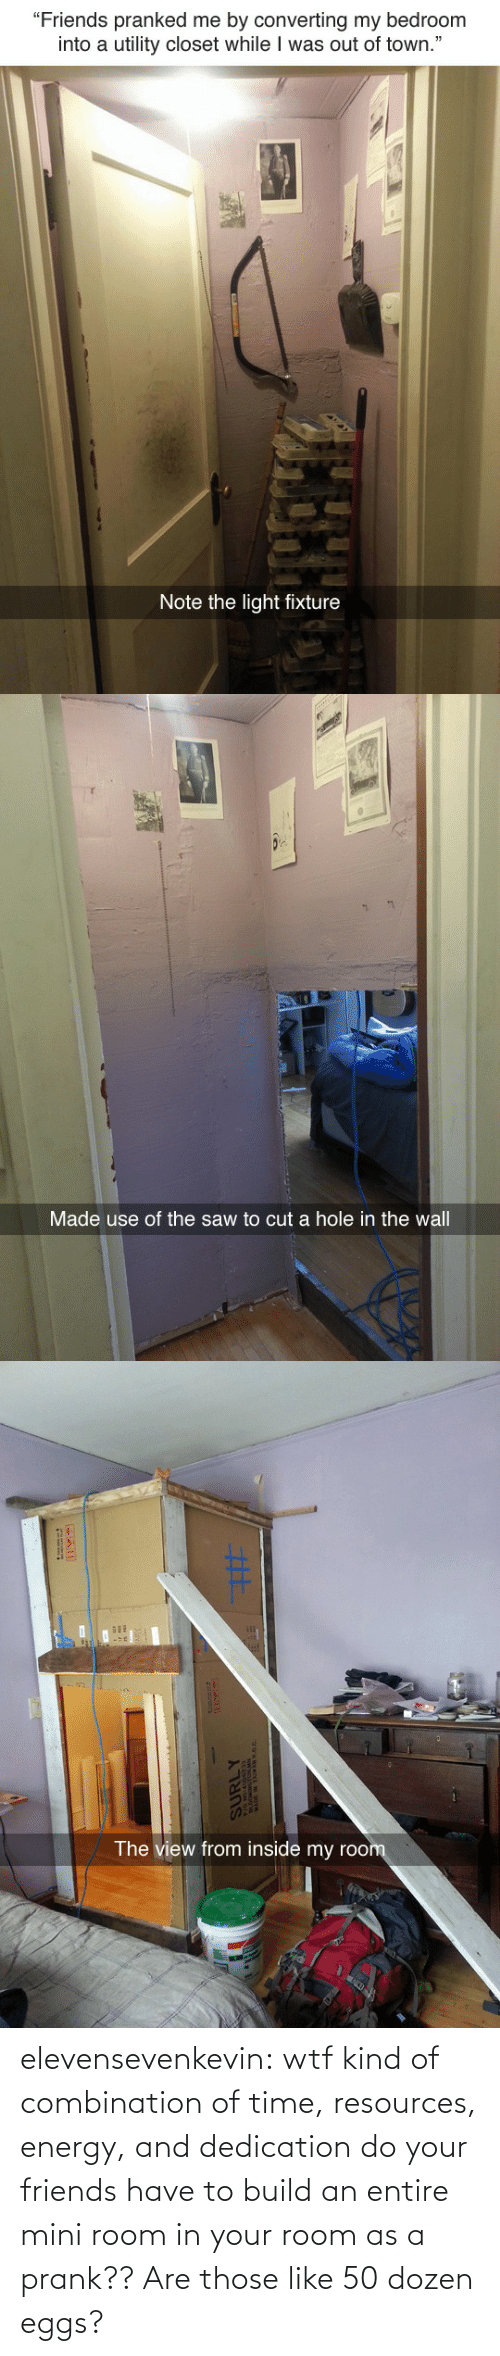 """Cut: """"Friends pranked me by converting my bedroom  into a utility closet while I was out of town.""""  Note the light fixture   Made use of the saw to cut a hole in the wall   The view from inside my roo elevensevenkevin:  wtf kind of combination of time, resources, energy, and dedication do your friends have to build an entire mini room in your room as a prank??    Are those like 50 dozen eggs?"""